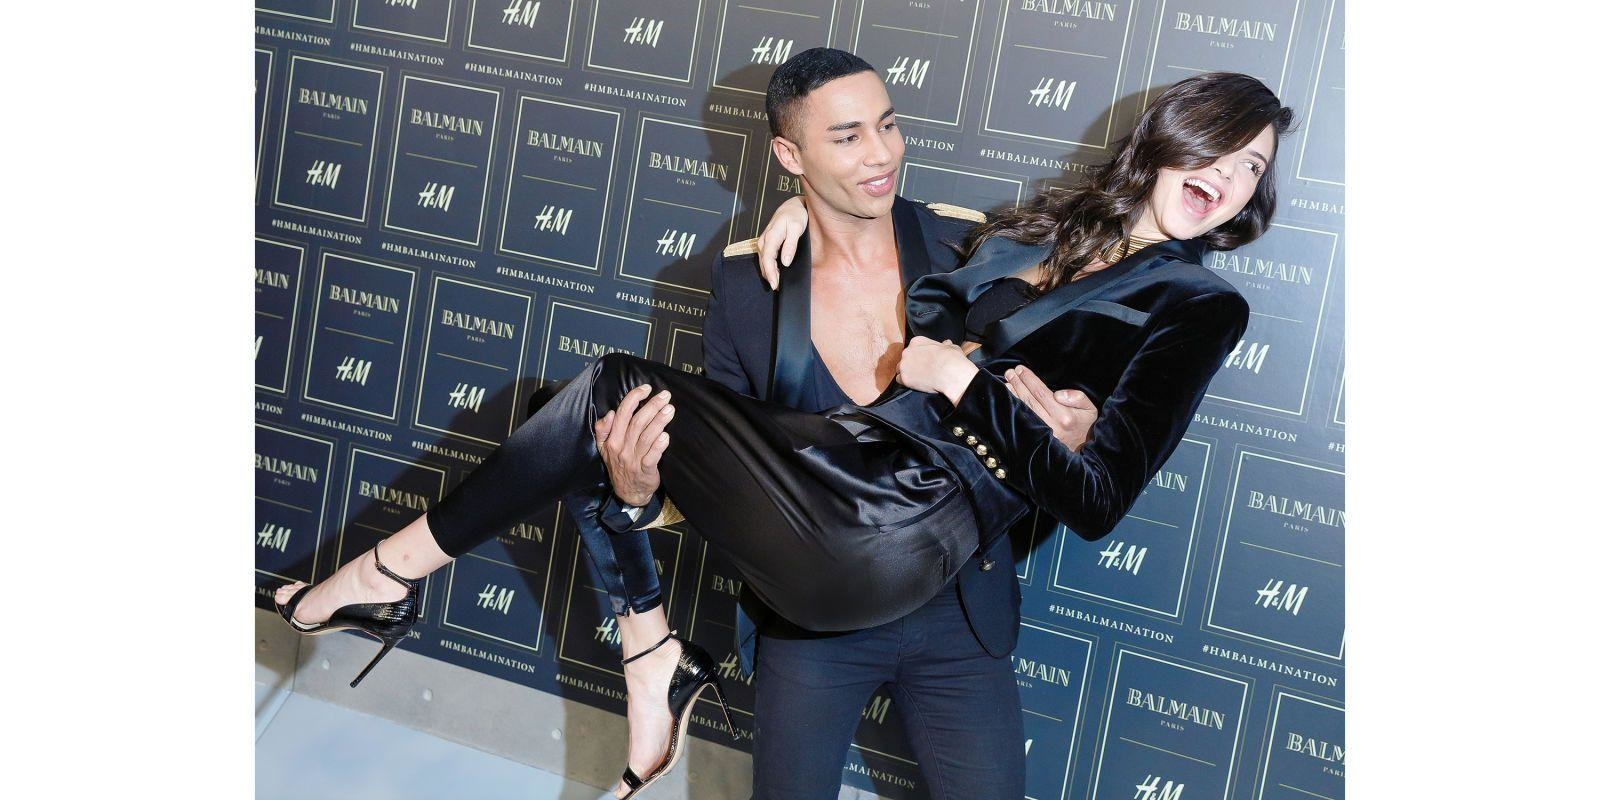 H&M Celebrates #Balmaination